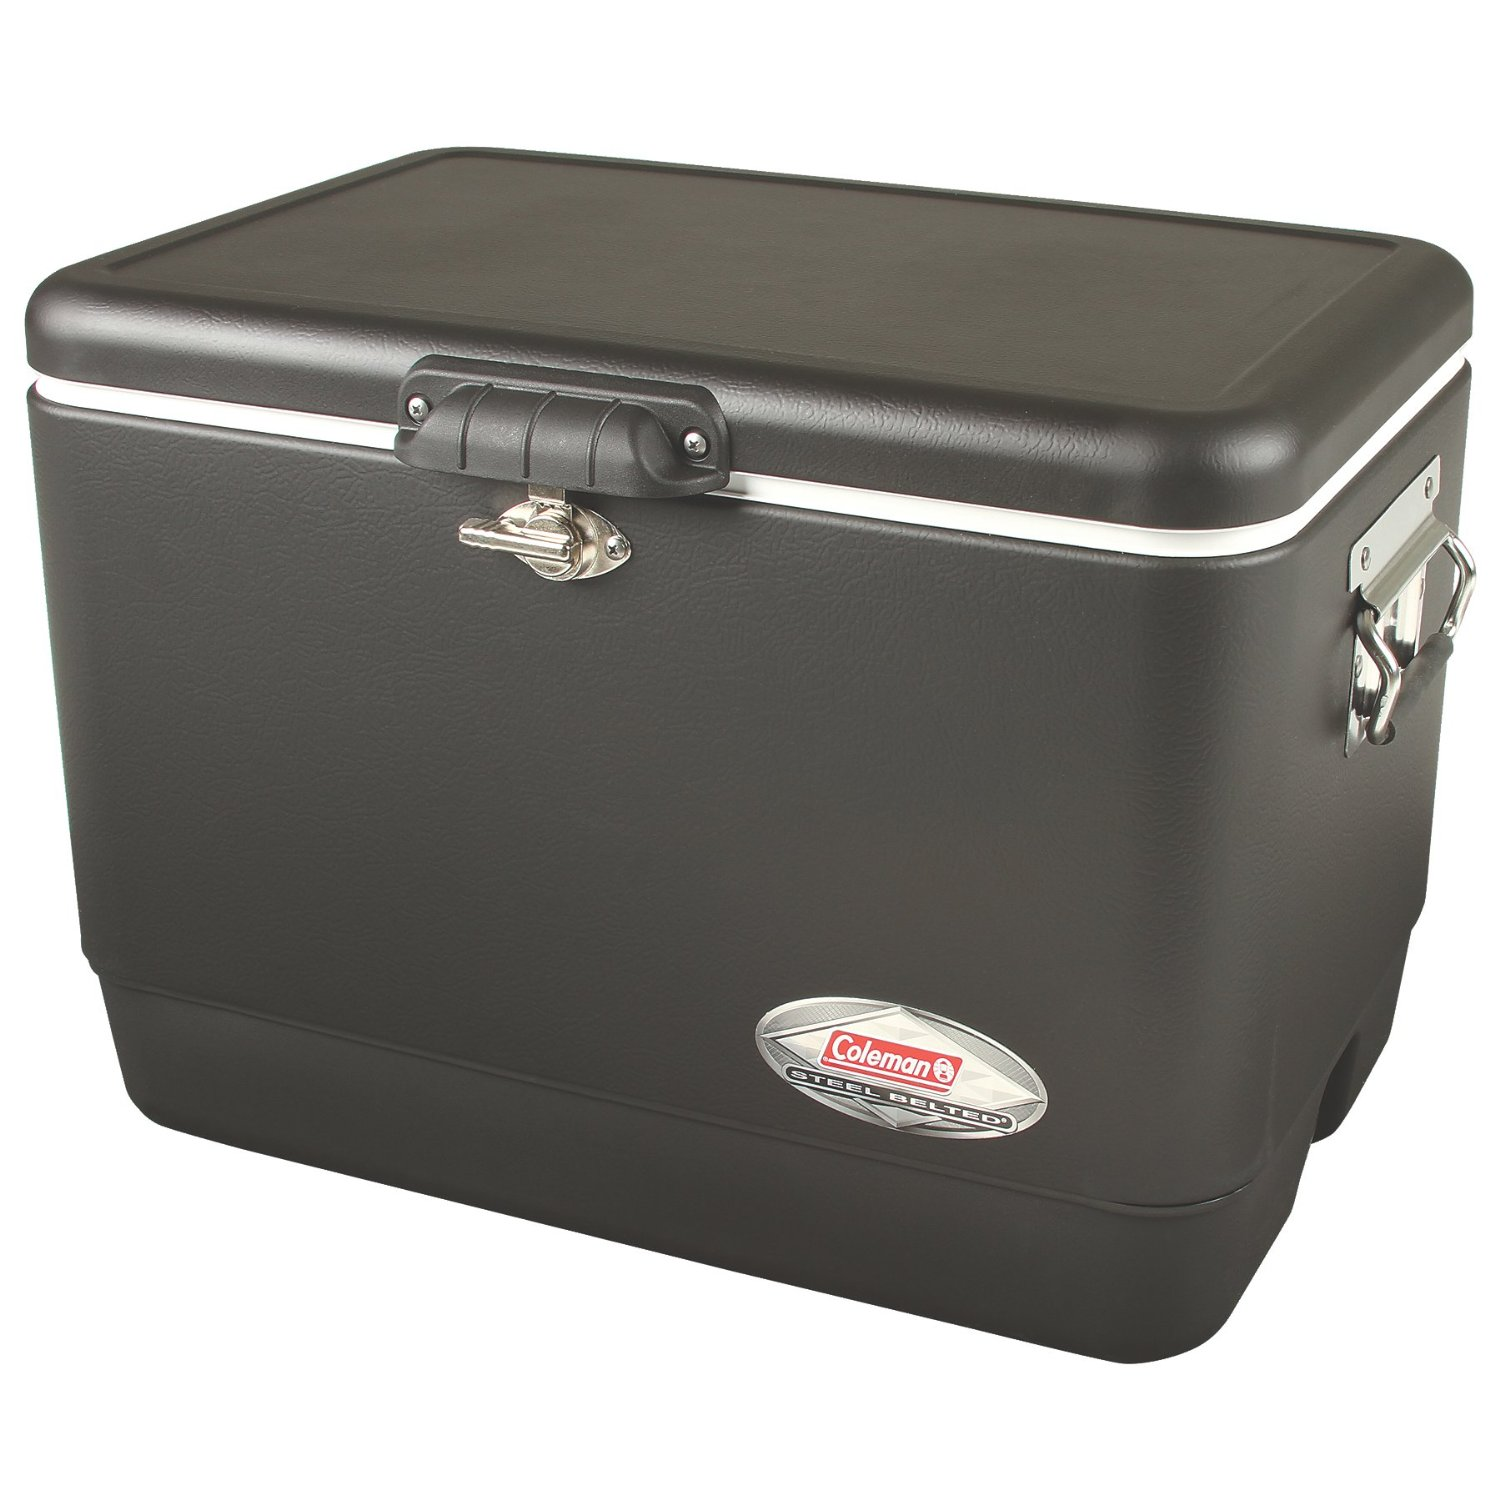 Coleman Large Capacity Steel-Belted Cooler